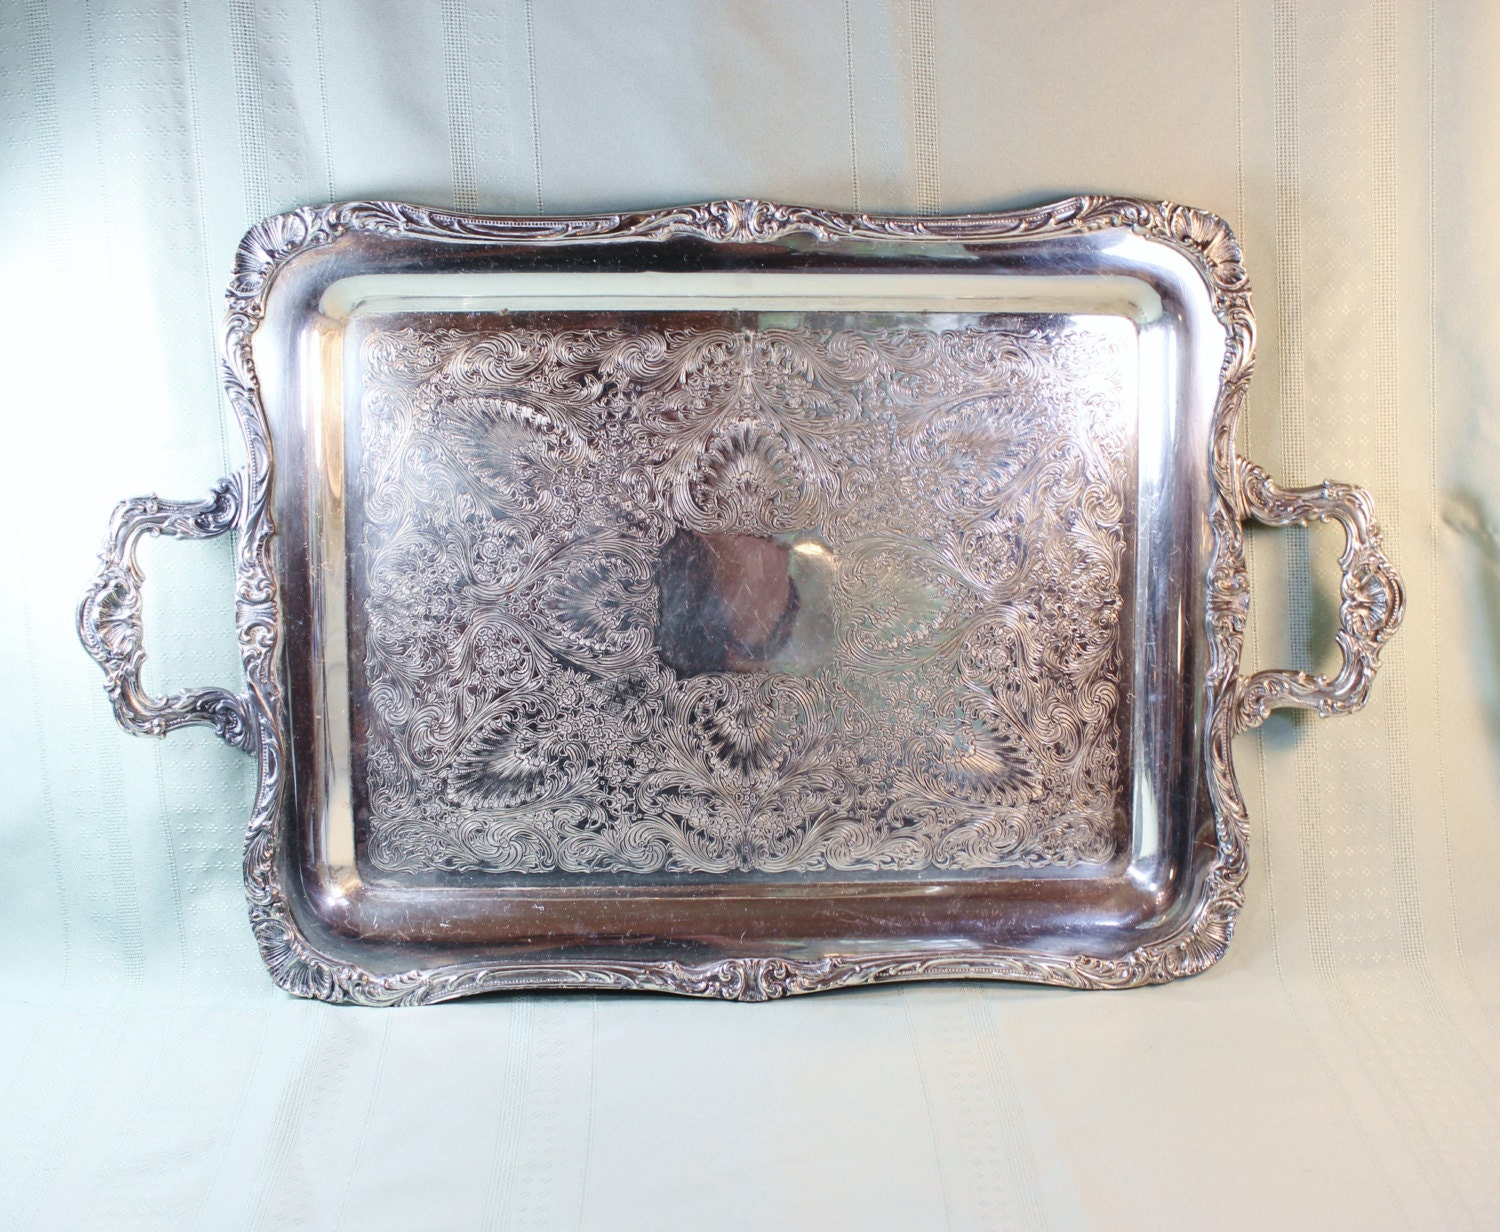 Silver Plate Tray Wm Rogers 290 Vintage Serving Tray Large